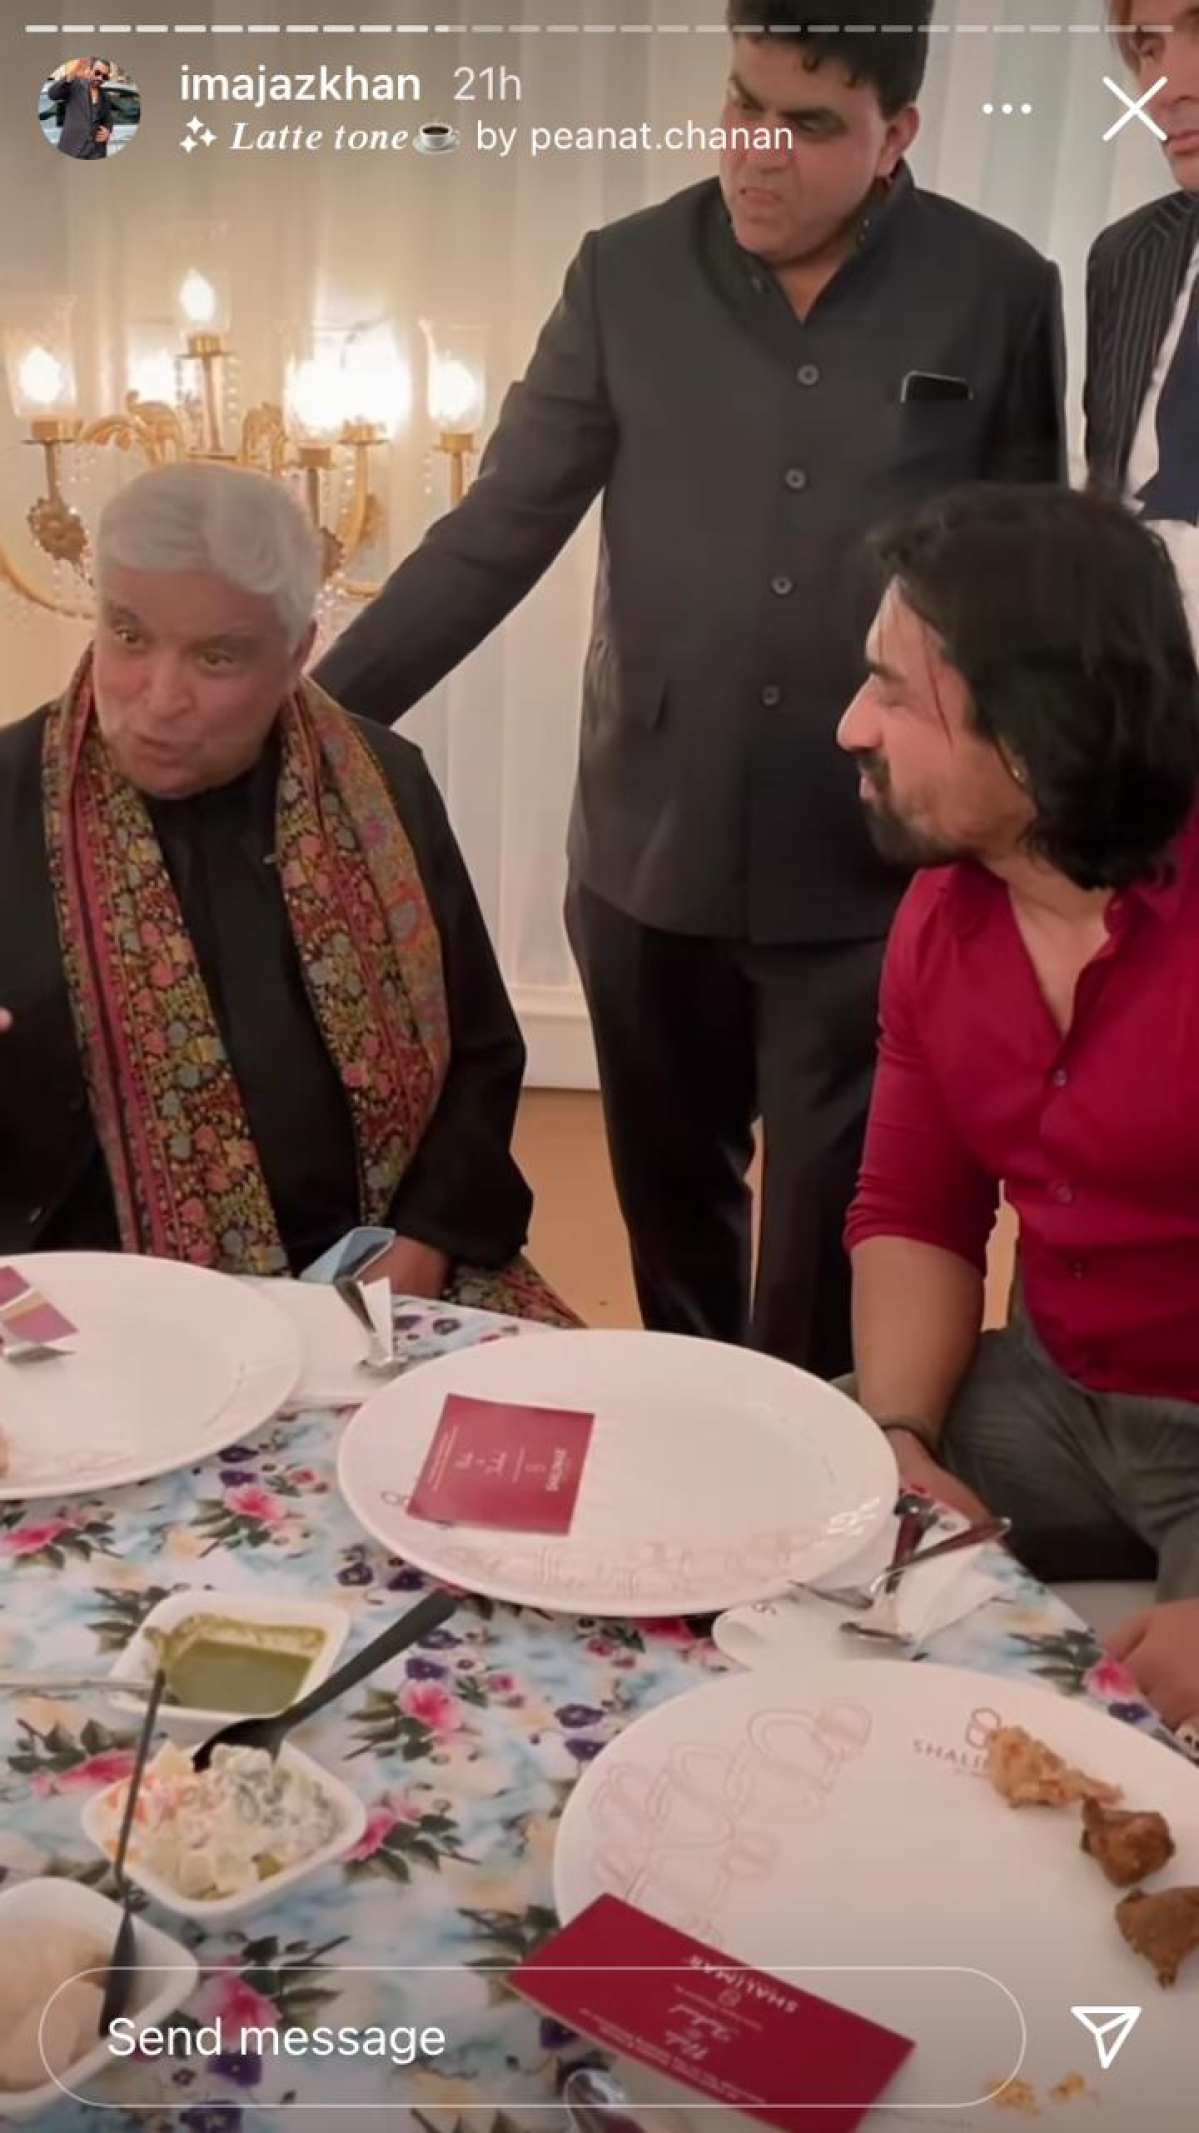 Here's what 'Bigg Boss 7' fame Ajaz Khan did after finding Javed Akhtar's stolen phone